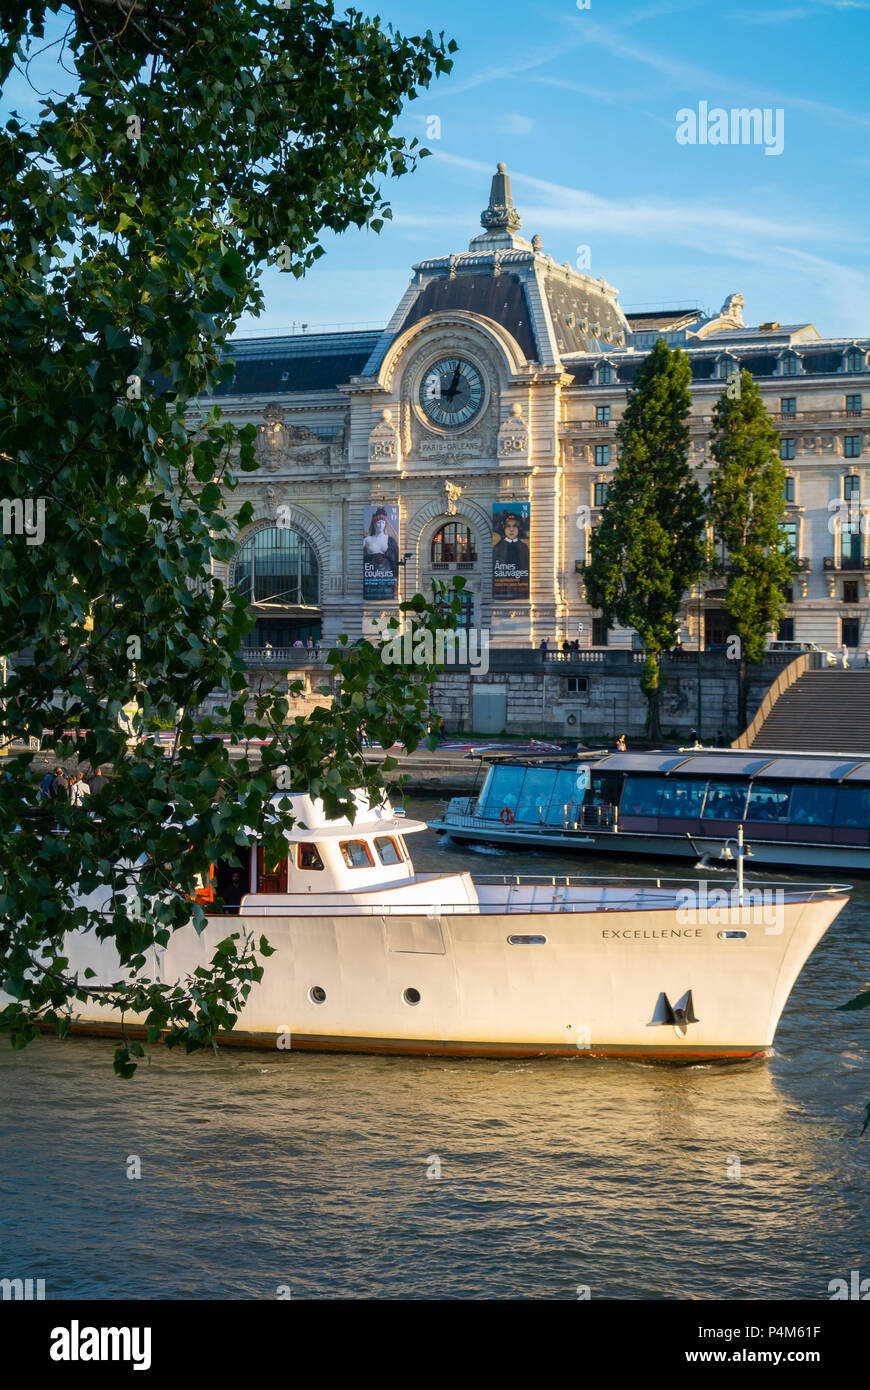 Tourist boat cruising on the Seine river with view of Orsay museum, Paris, IDF, France Stock Photo